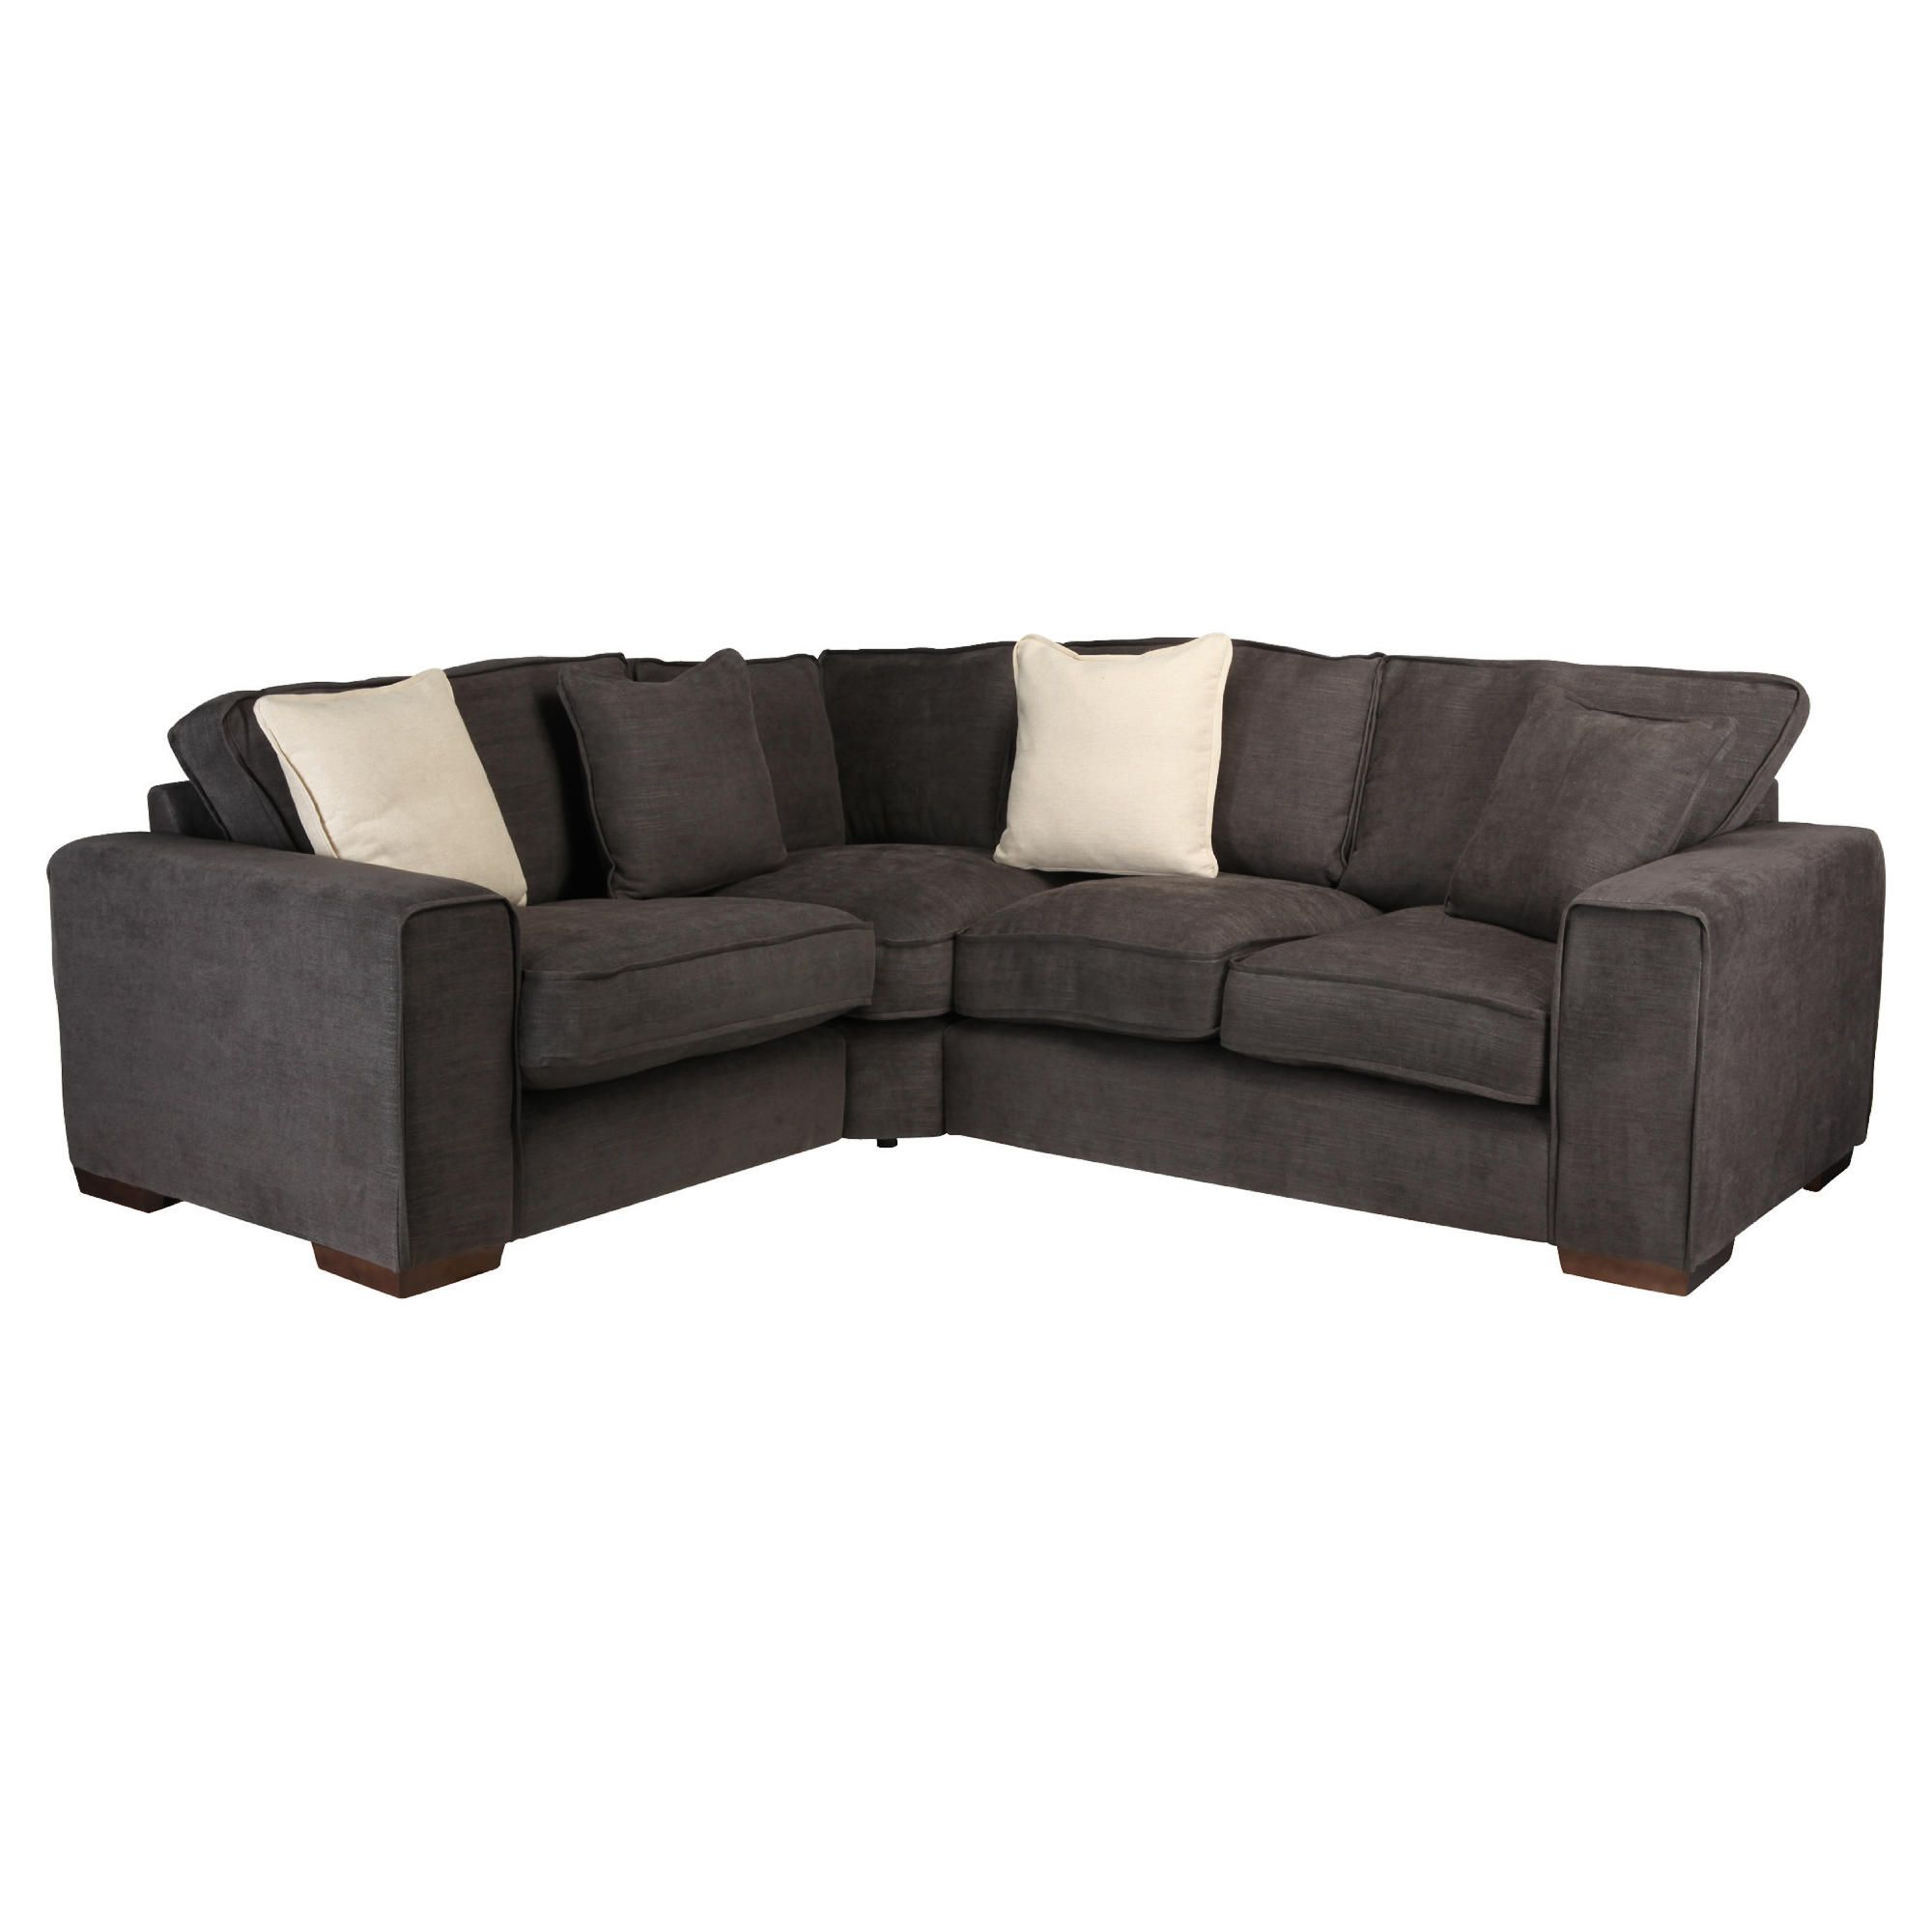 Omega Fabric Corner Sofa, Bark Left Hand Facing at Tesco Direct